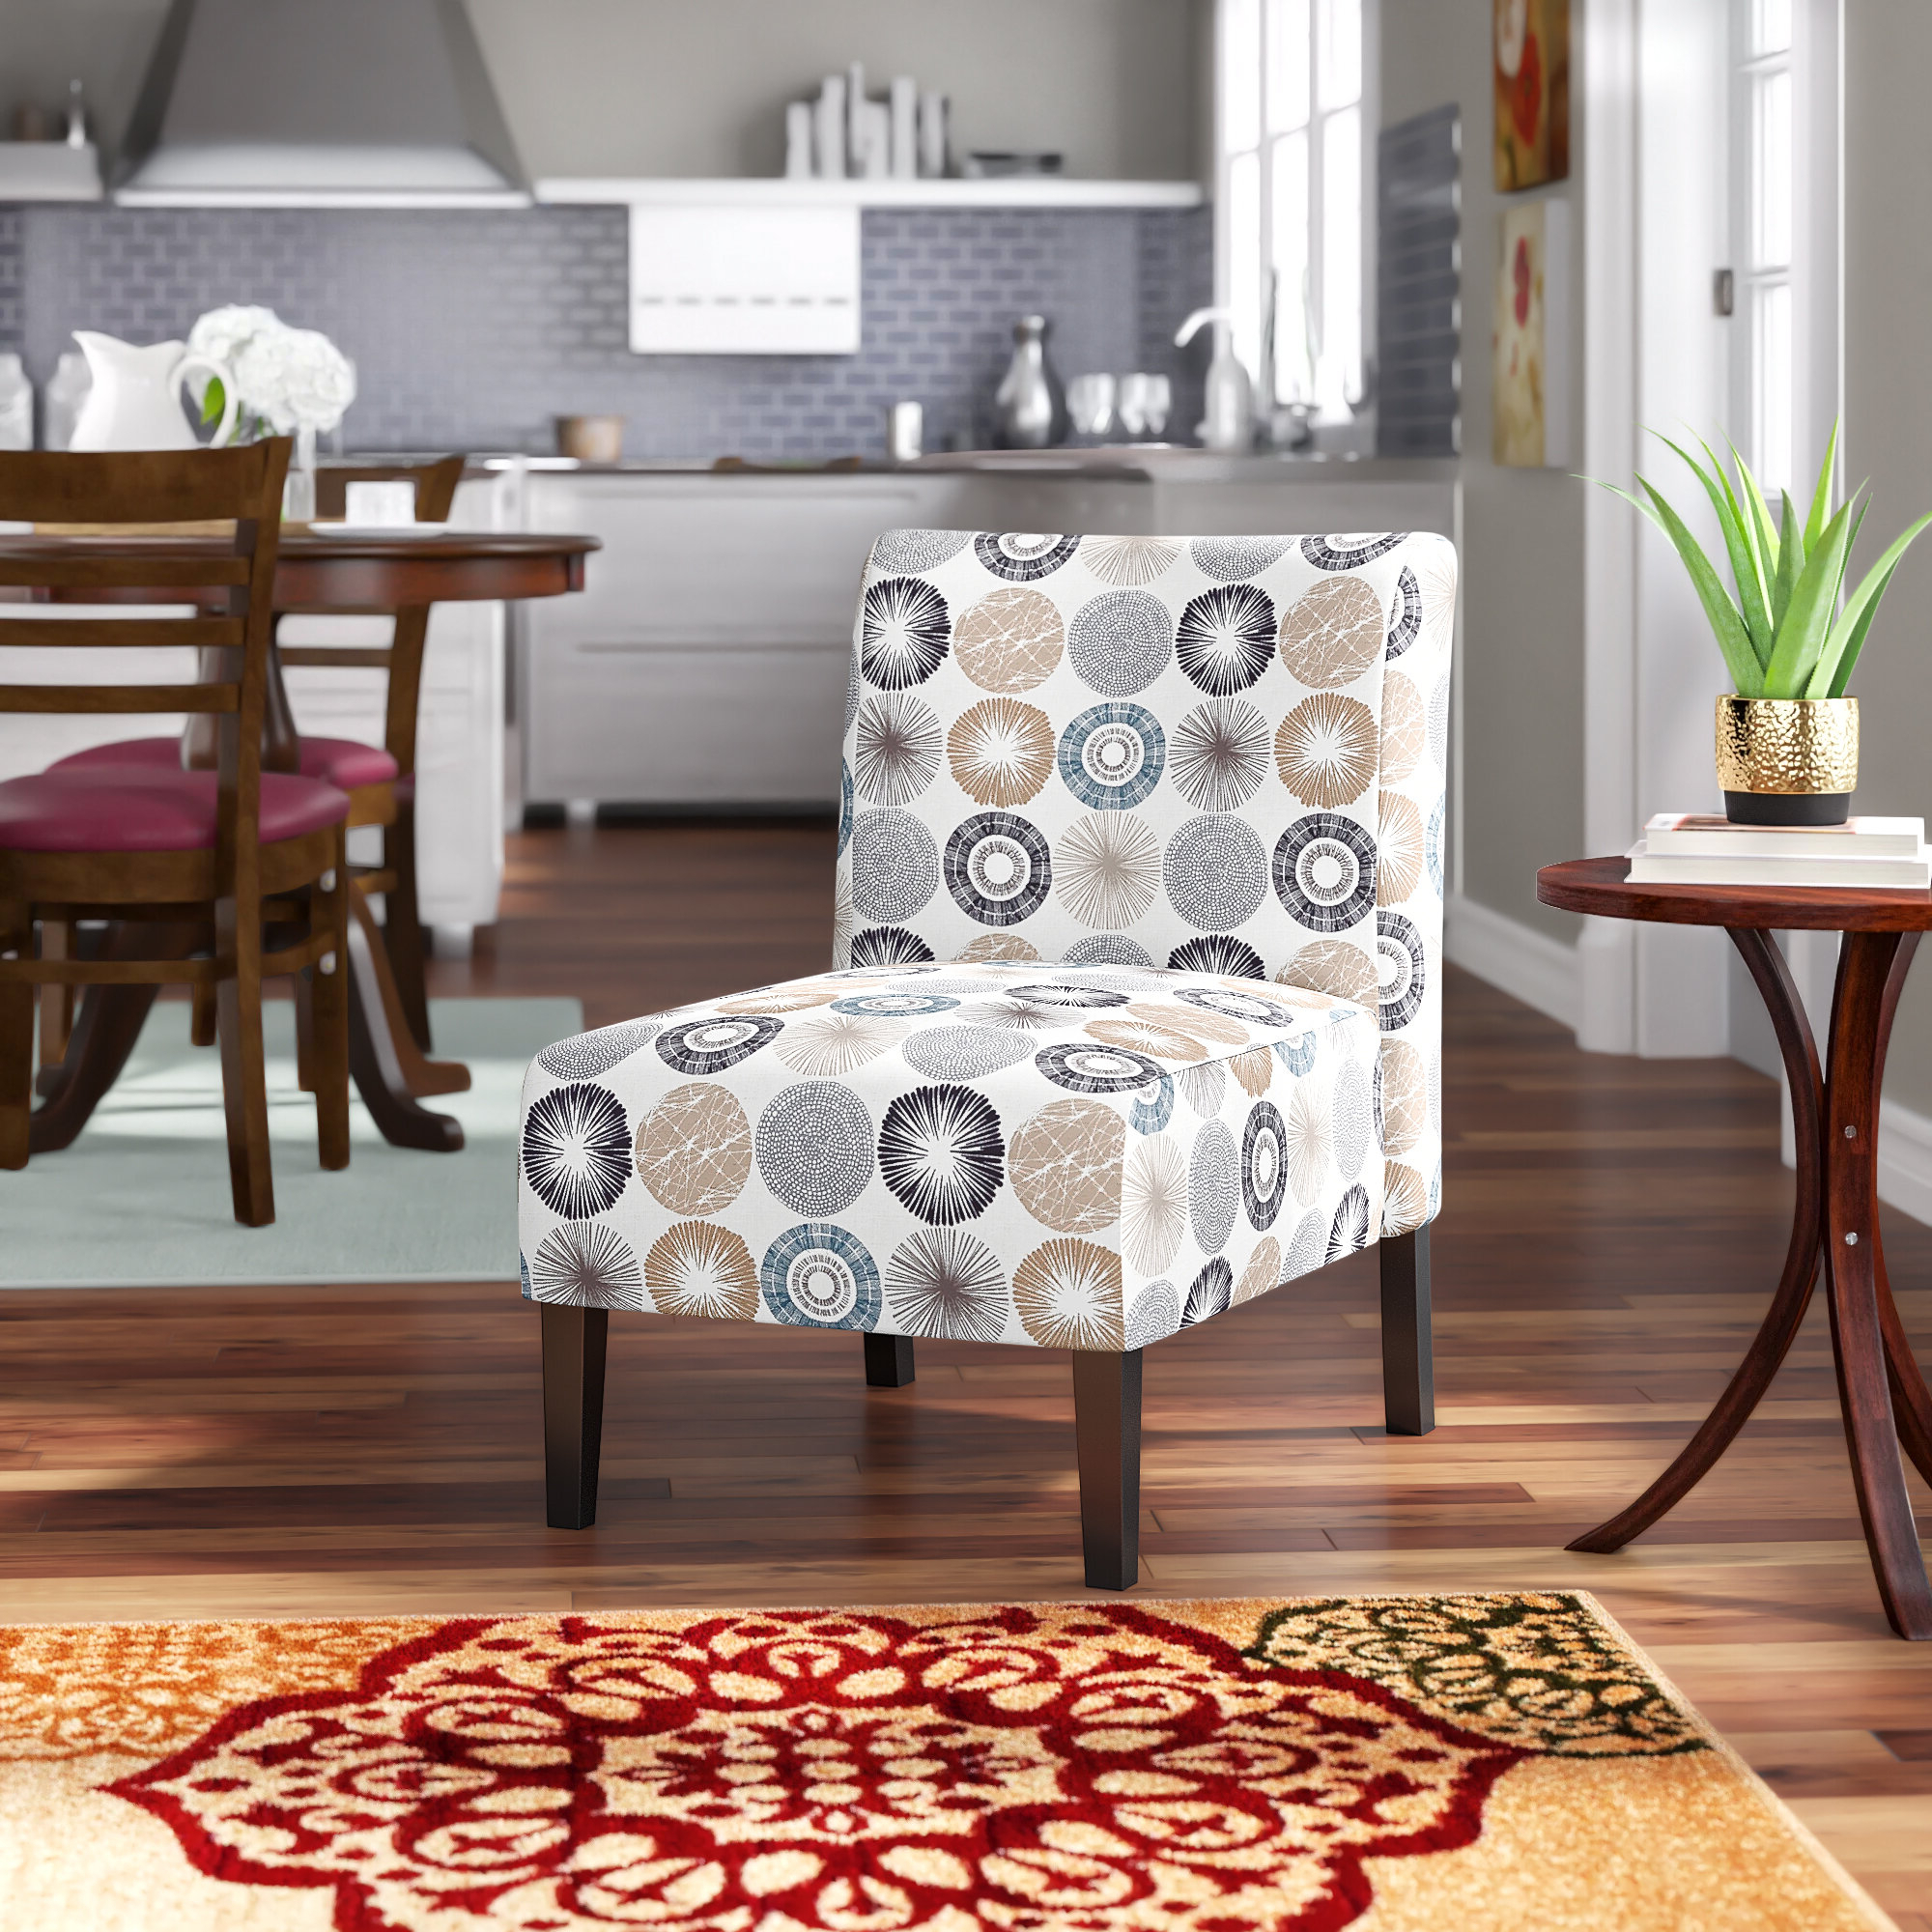 Peabody Slipper Chair With Regard To Current Gozzoli Slipper Chairs (View 13 of 20)